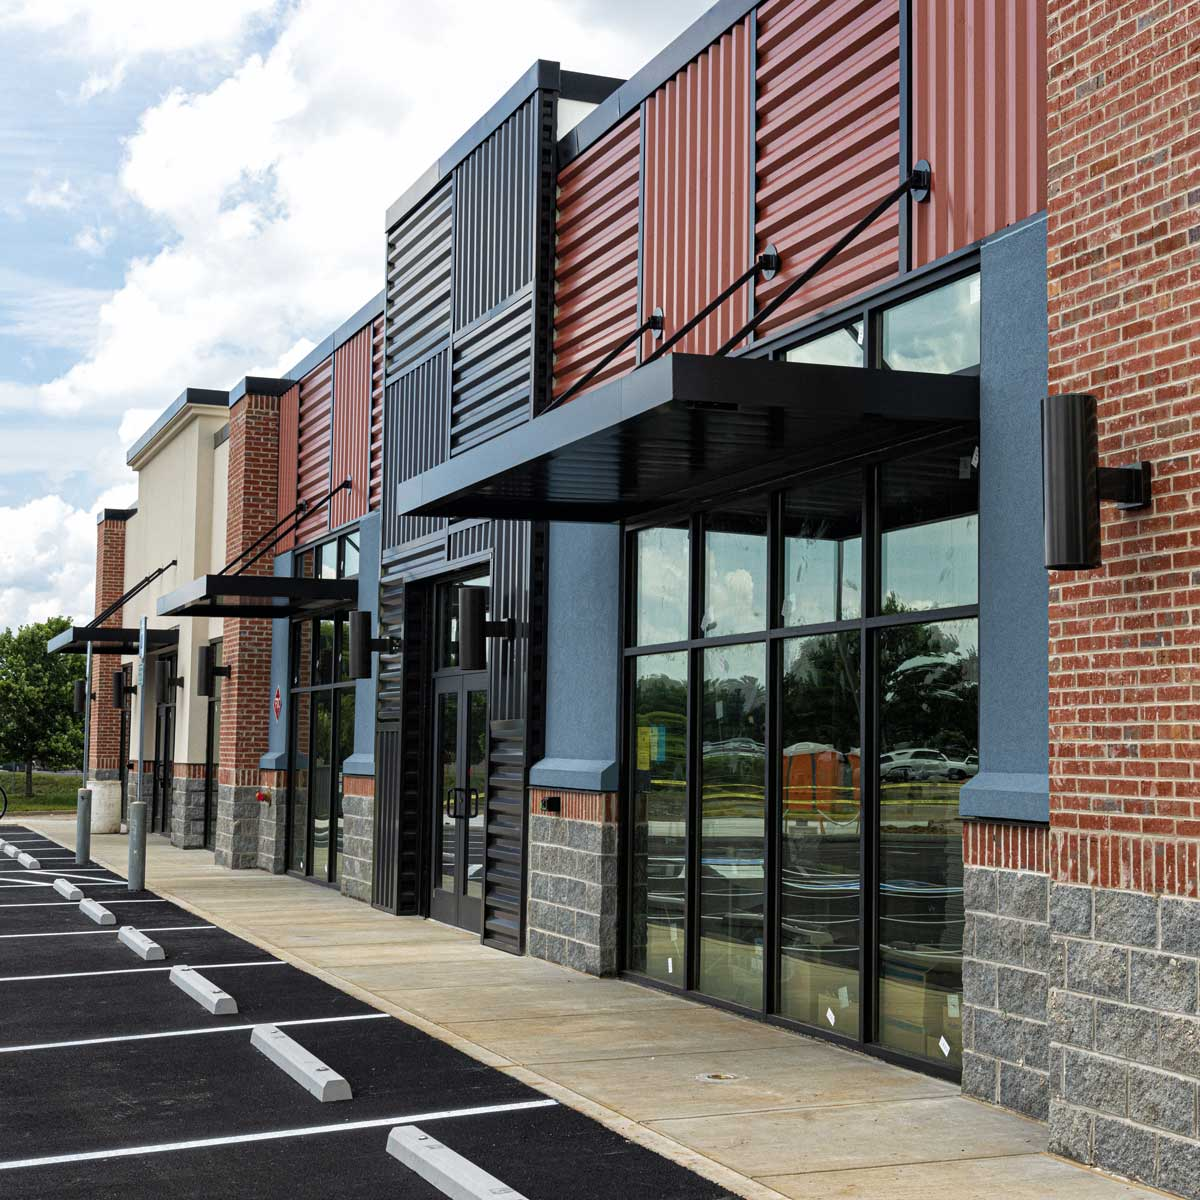 brick building exterior; strip building with parking lot